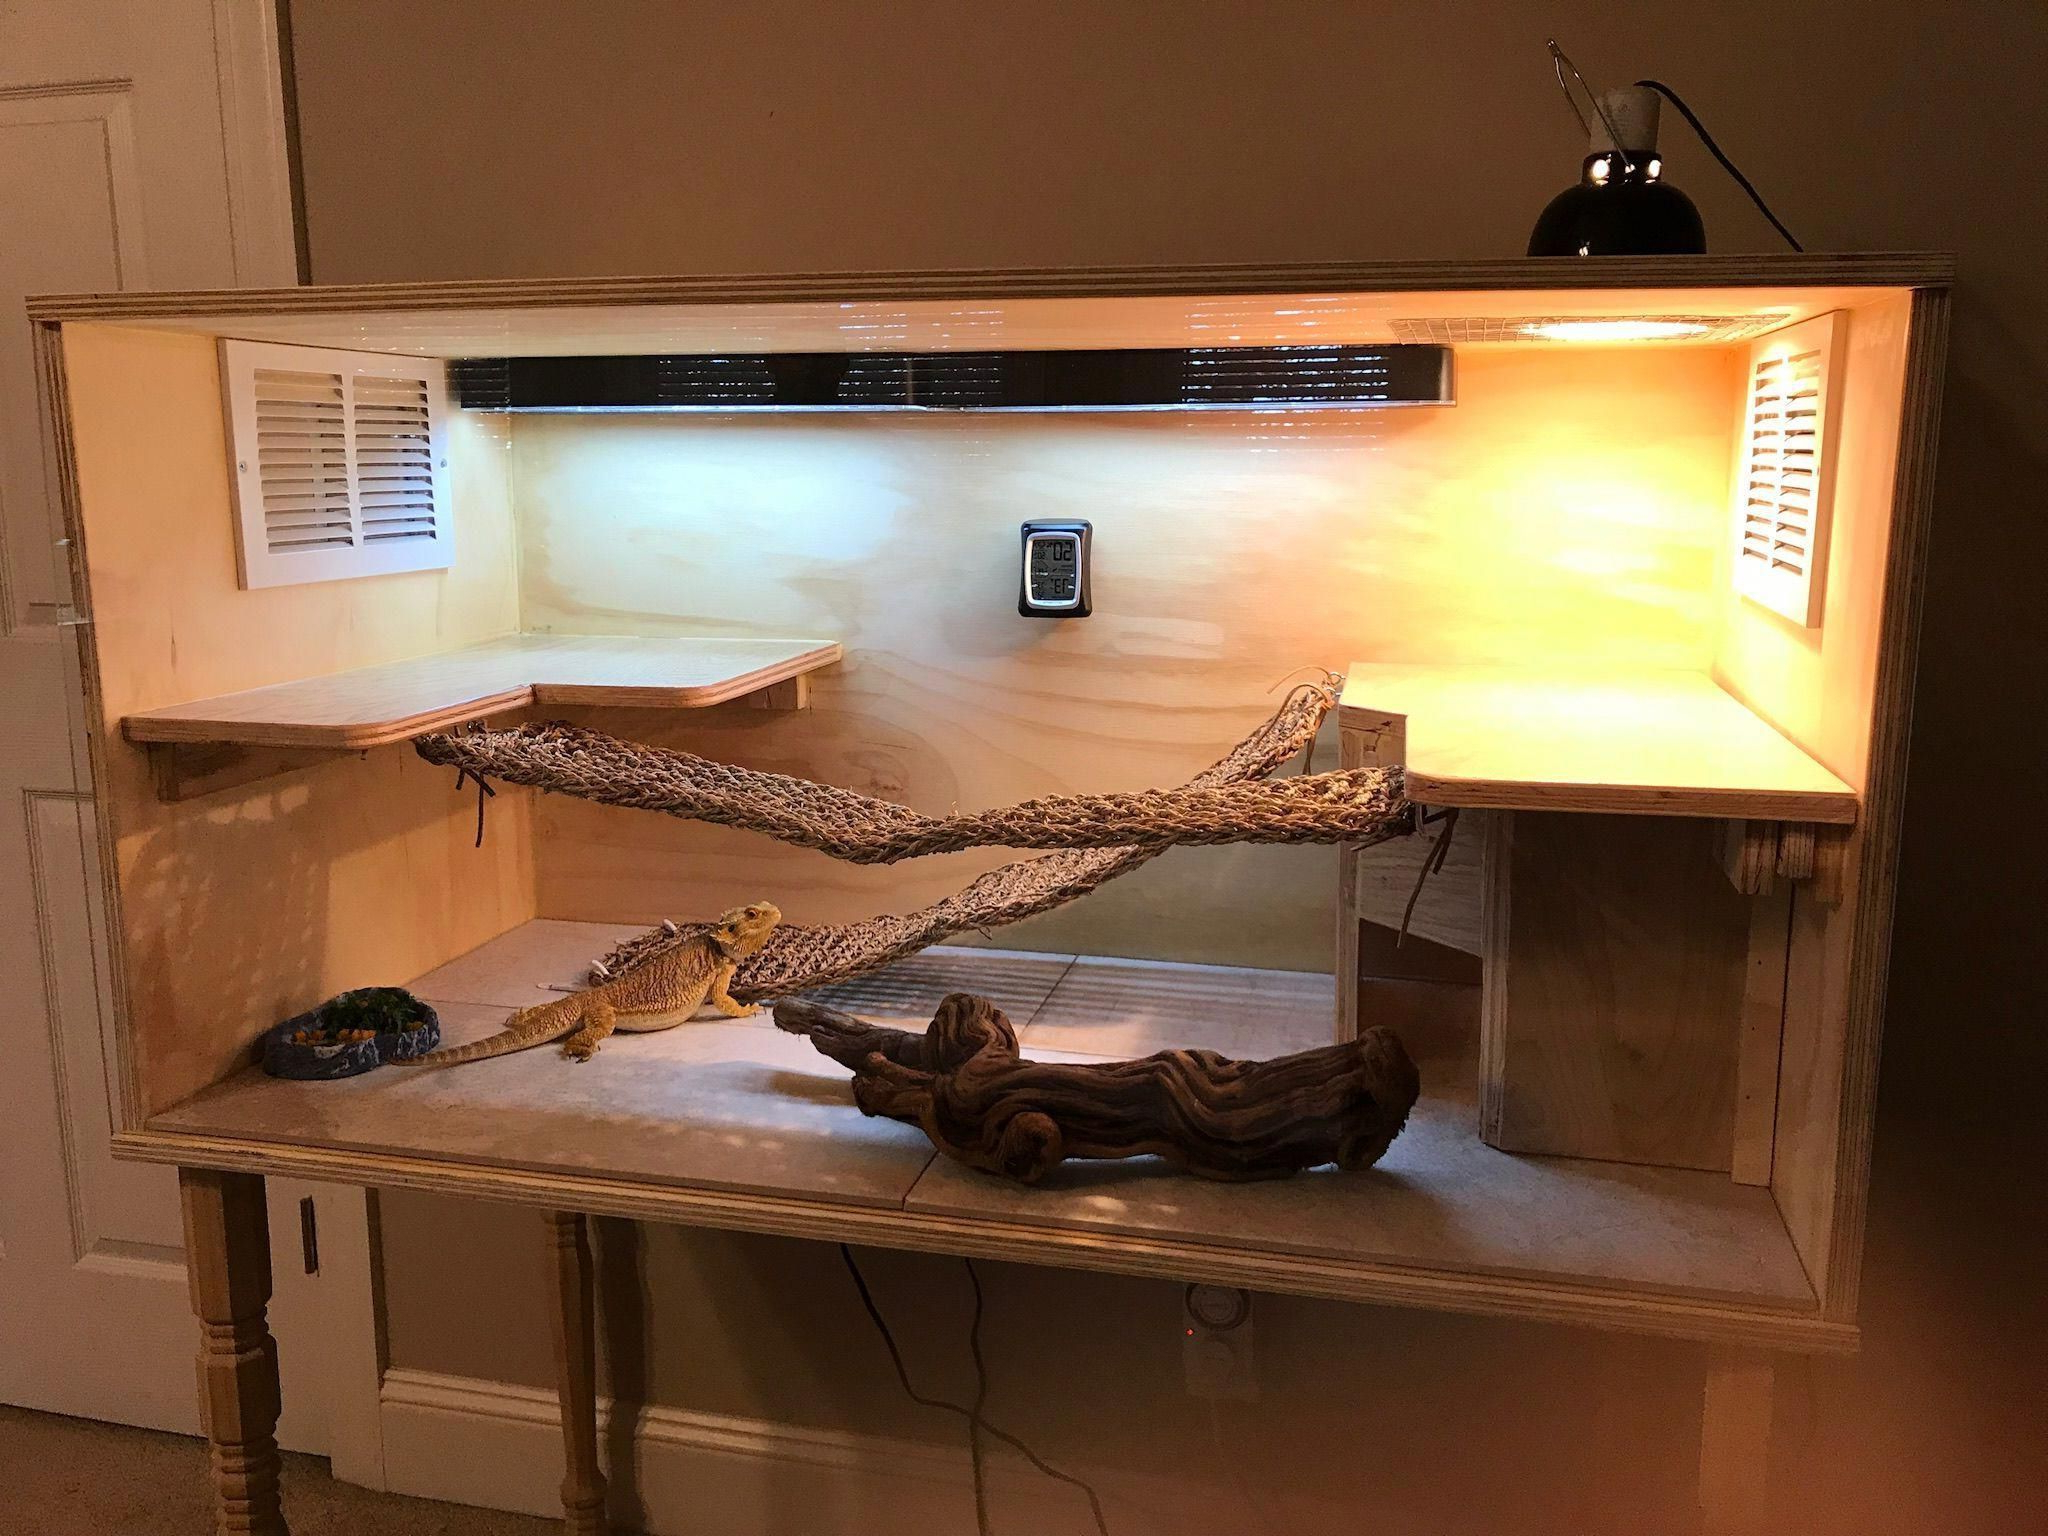 Rhya 4 Door Sideboards Pertaining To Most Popular Diy Bearded Dragon Enclosure #beardeddragondiy (View 13 of 20)